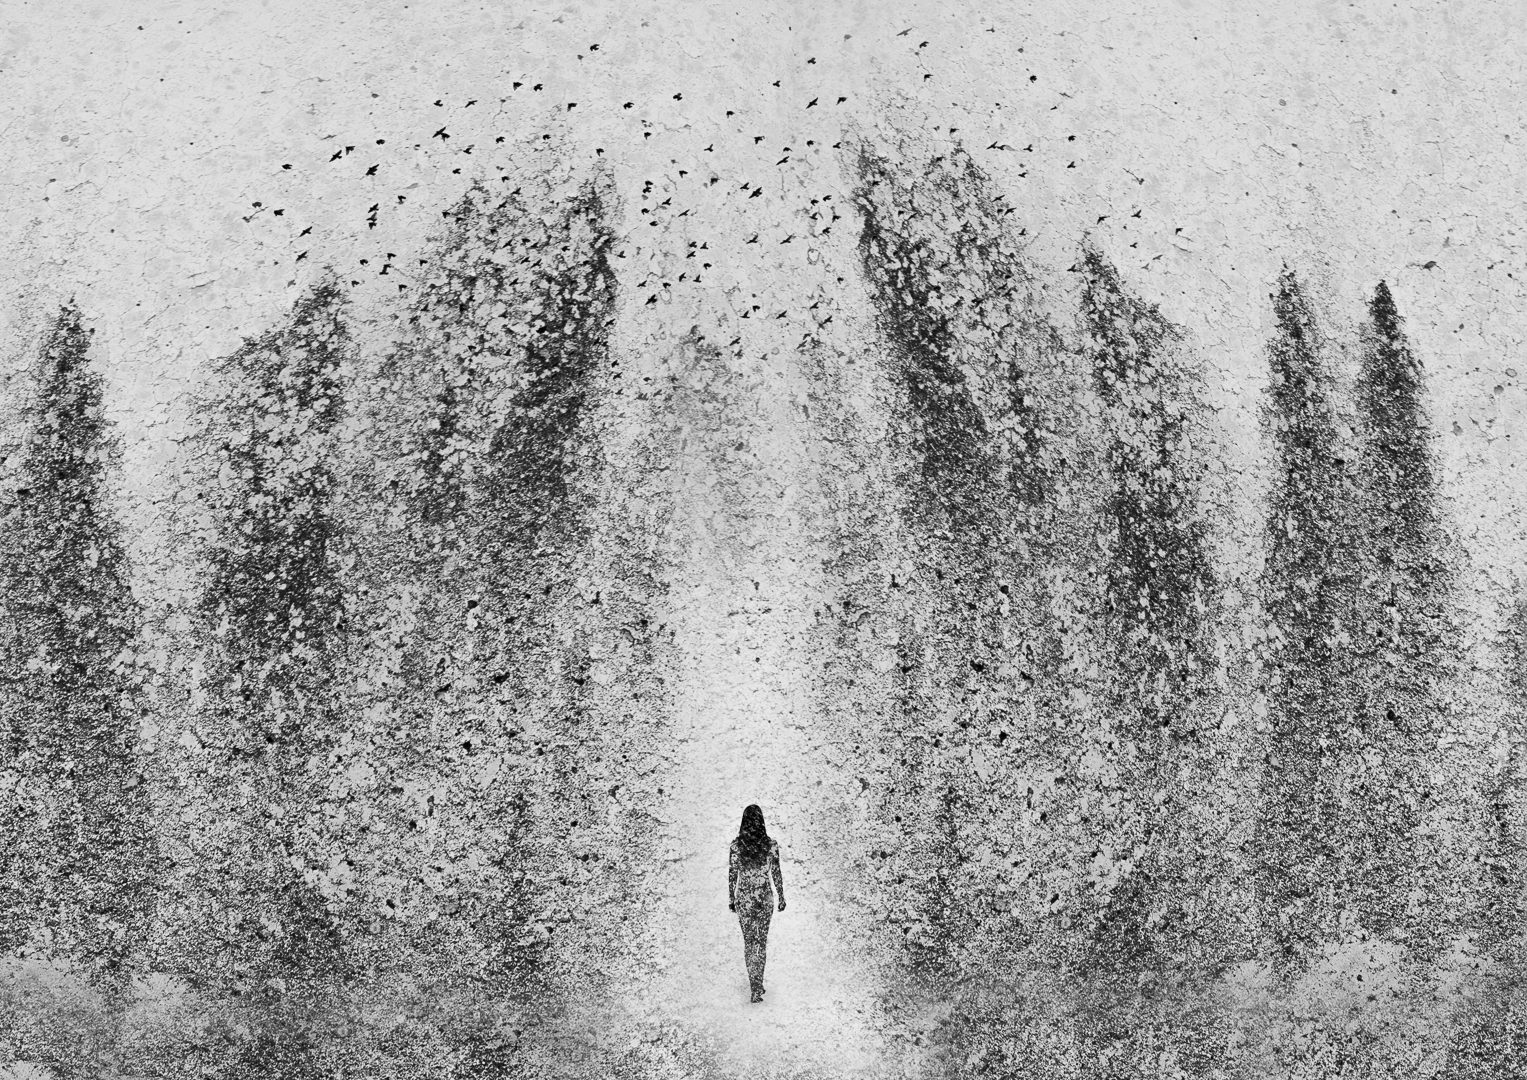 Alone with the Nature, Jonas D. Madsen